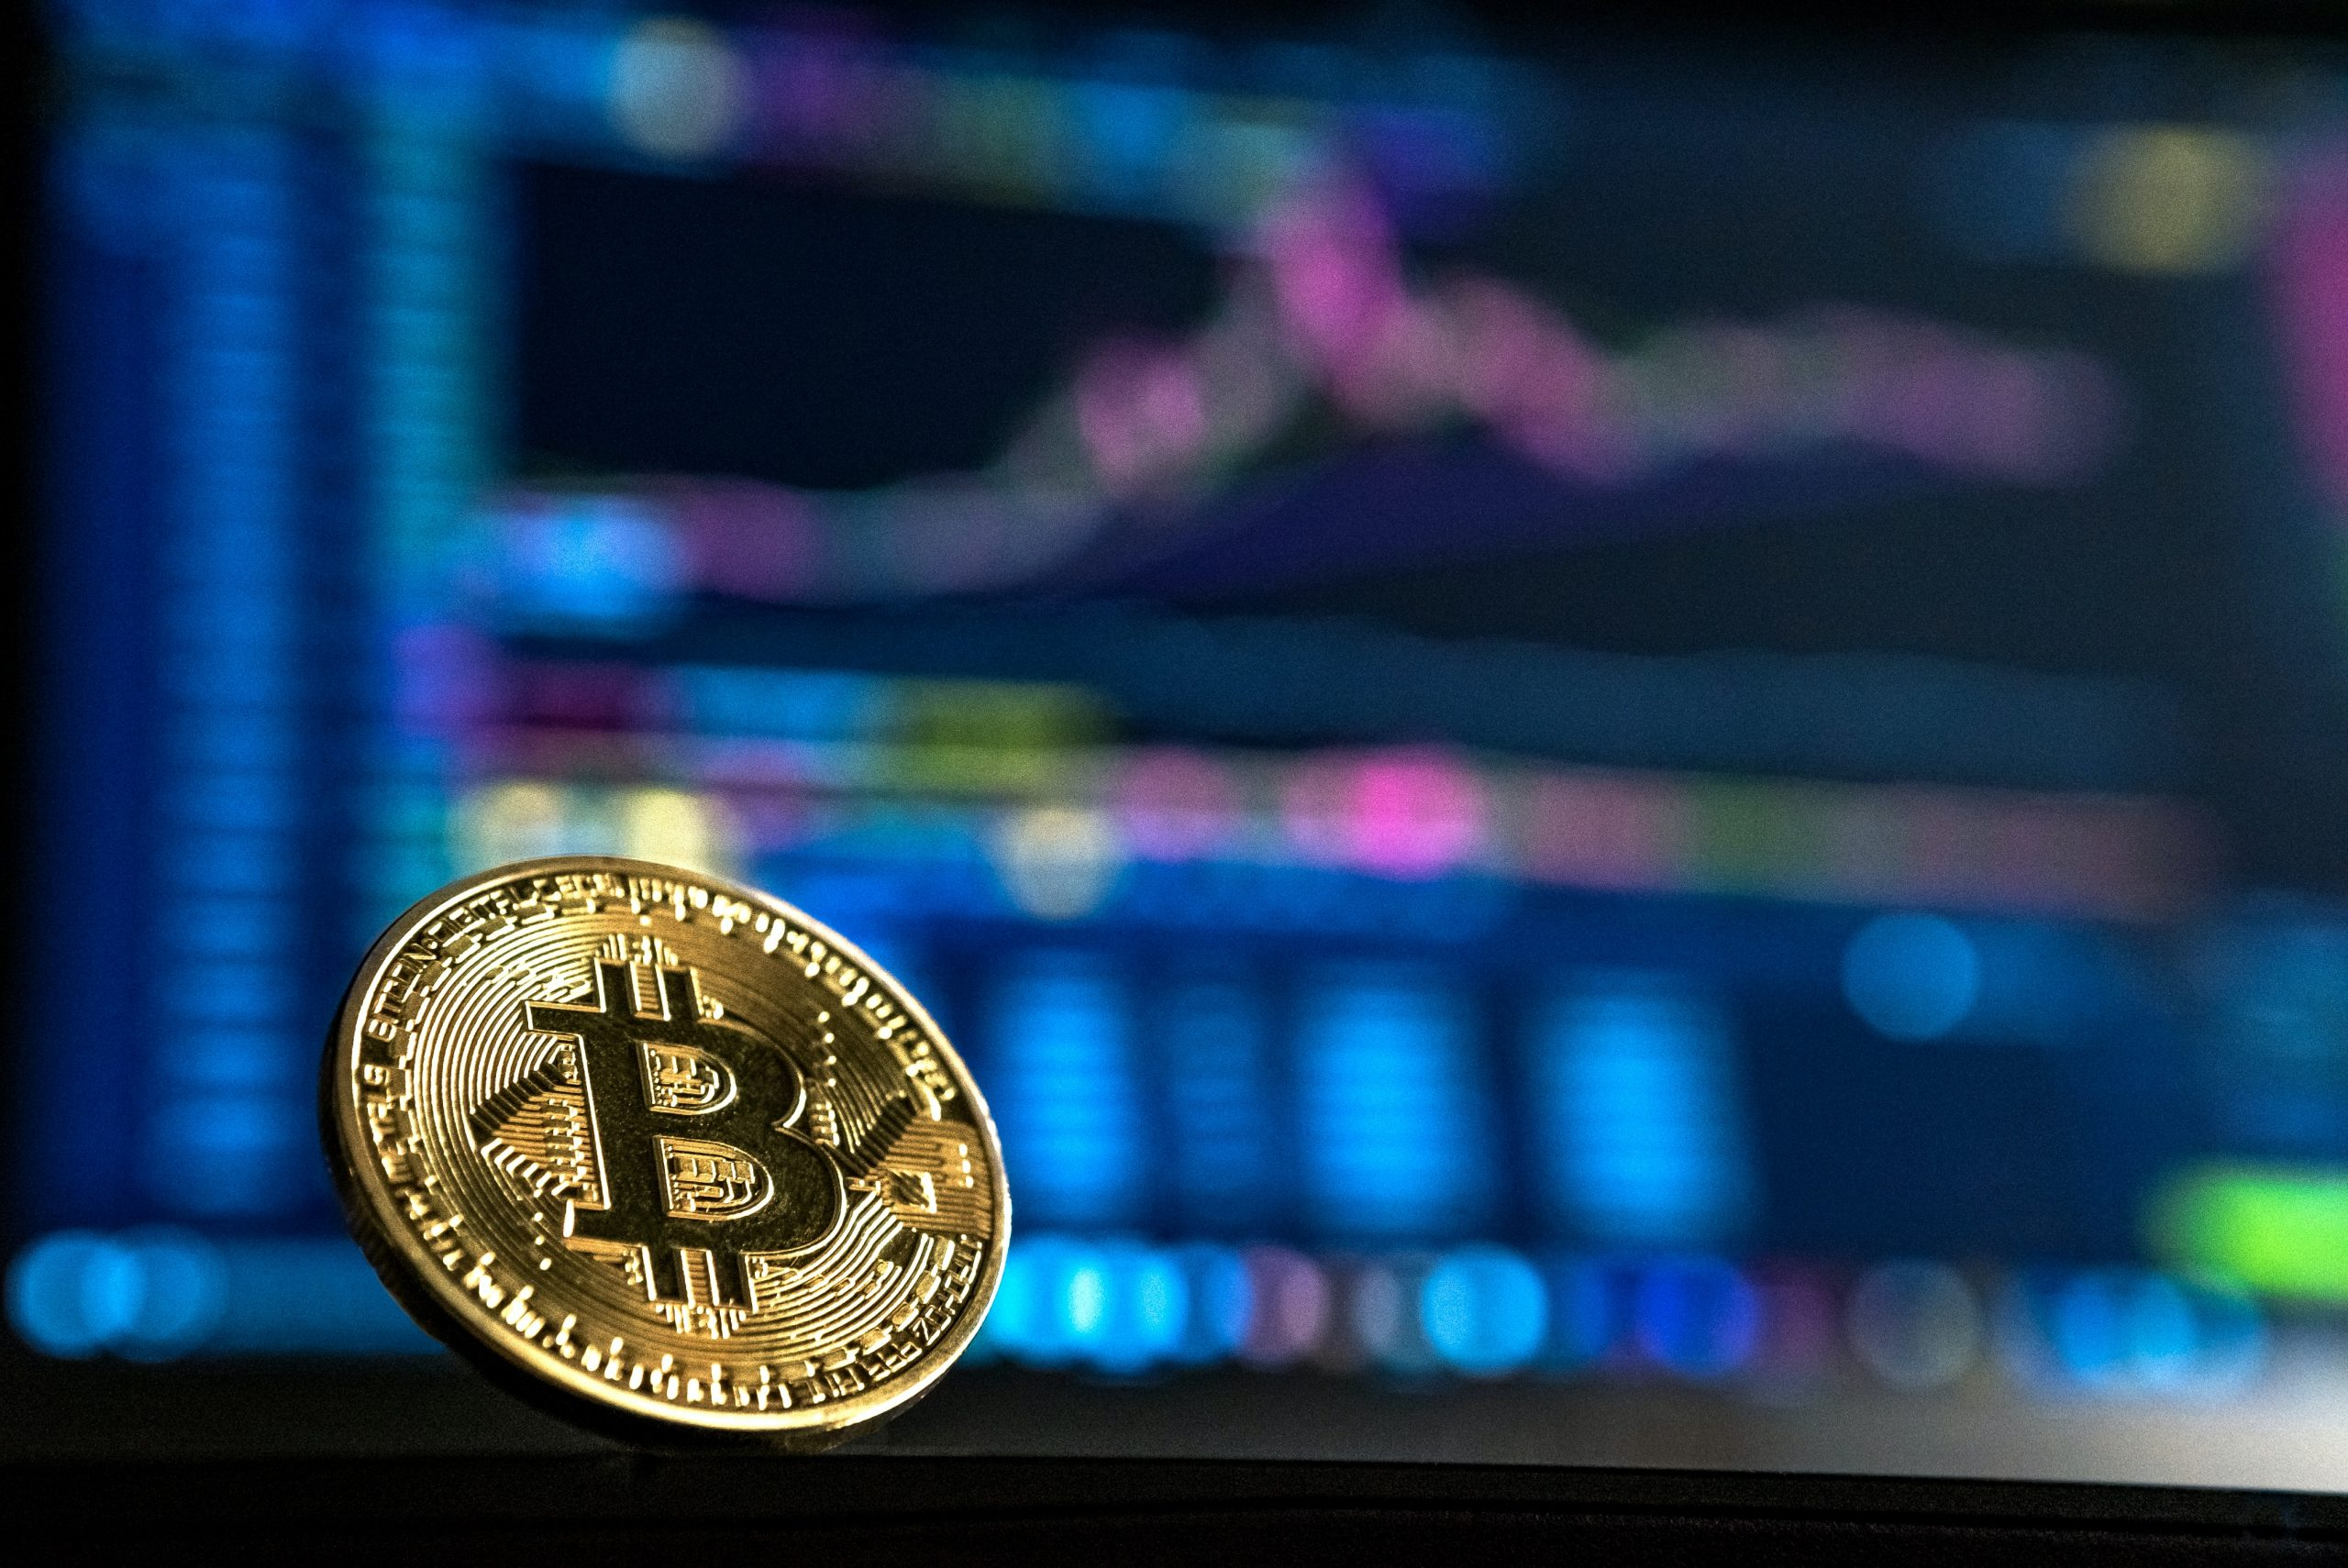 Bitcoin could be on the rise